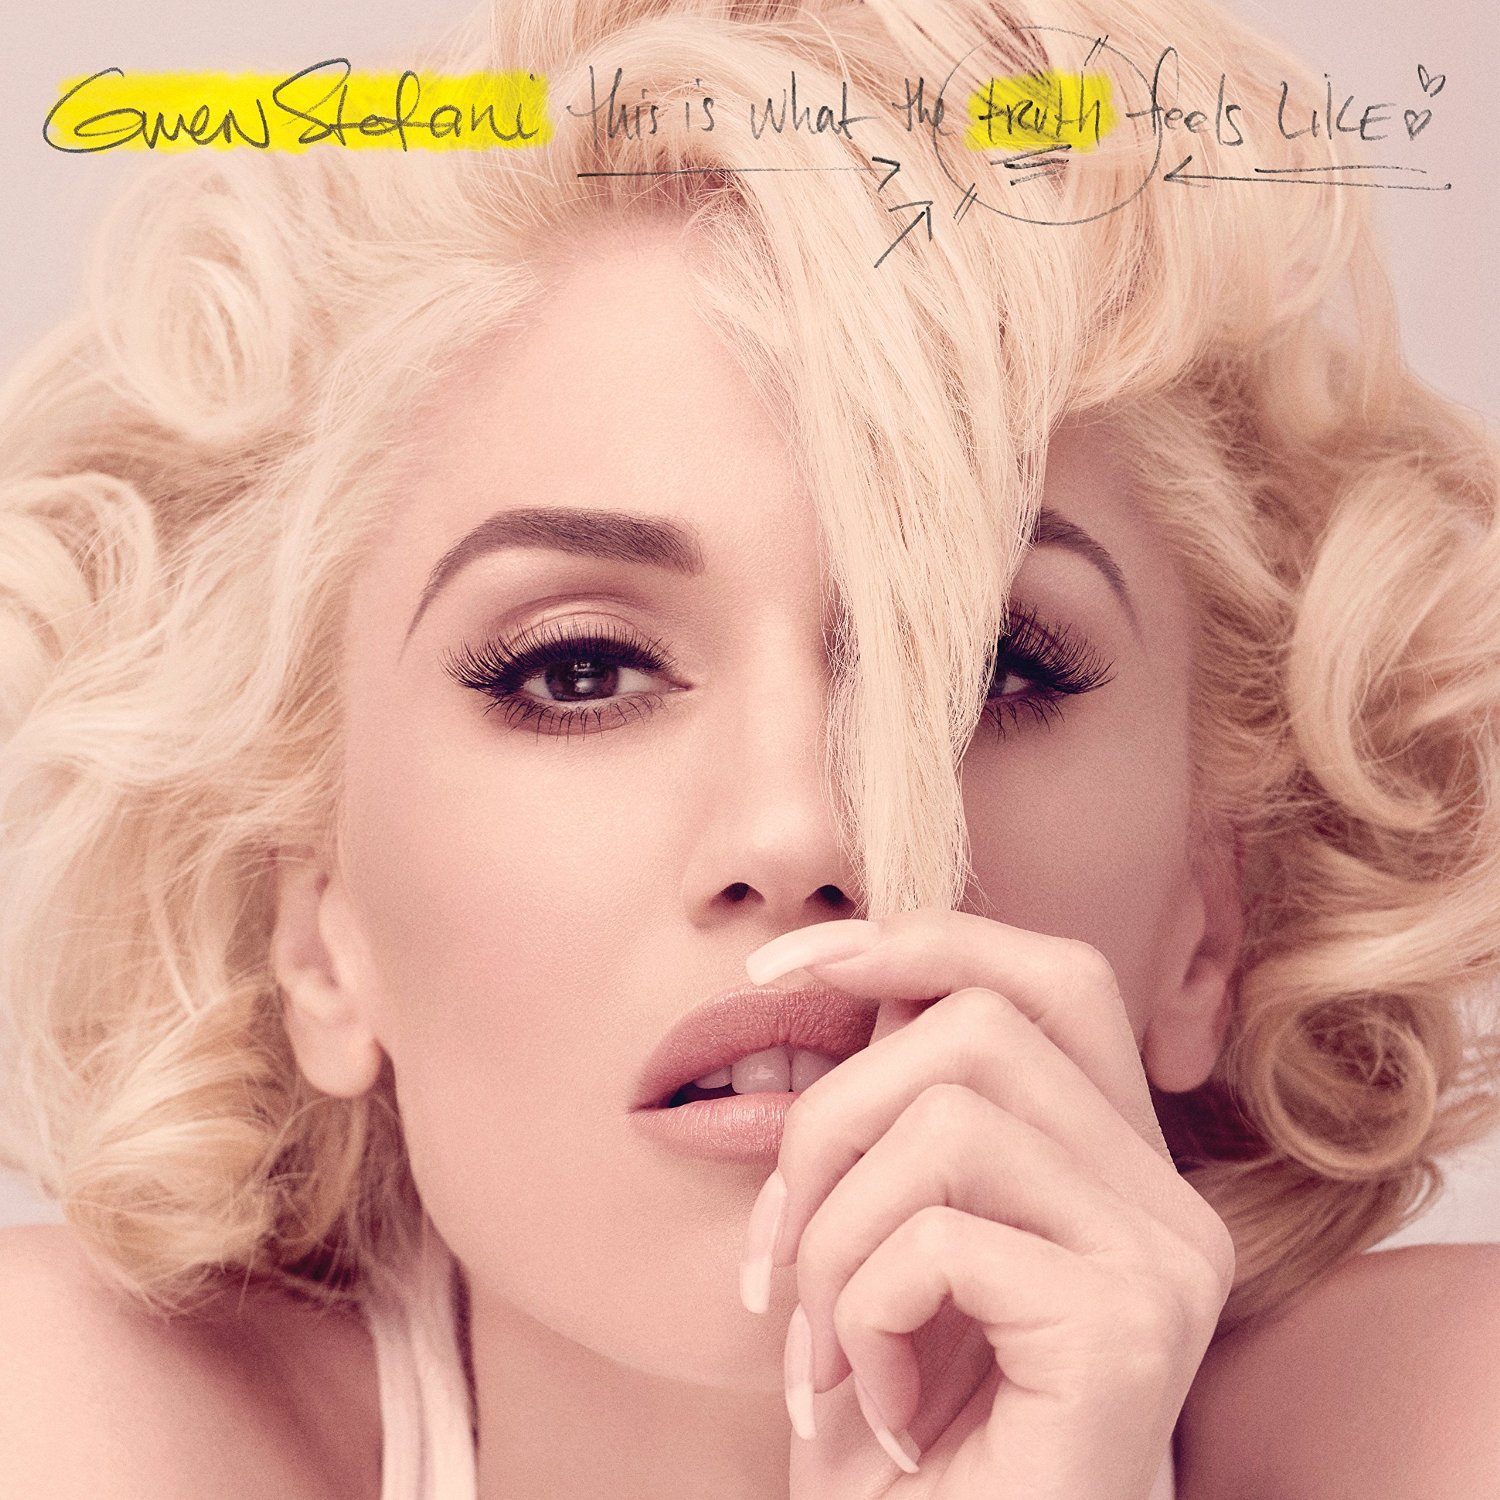 Music Review: Gwen Stefani - This Is What The Truth Feels Like